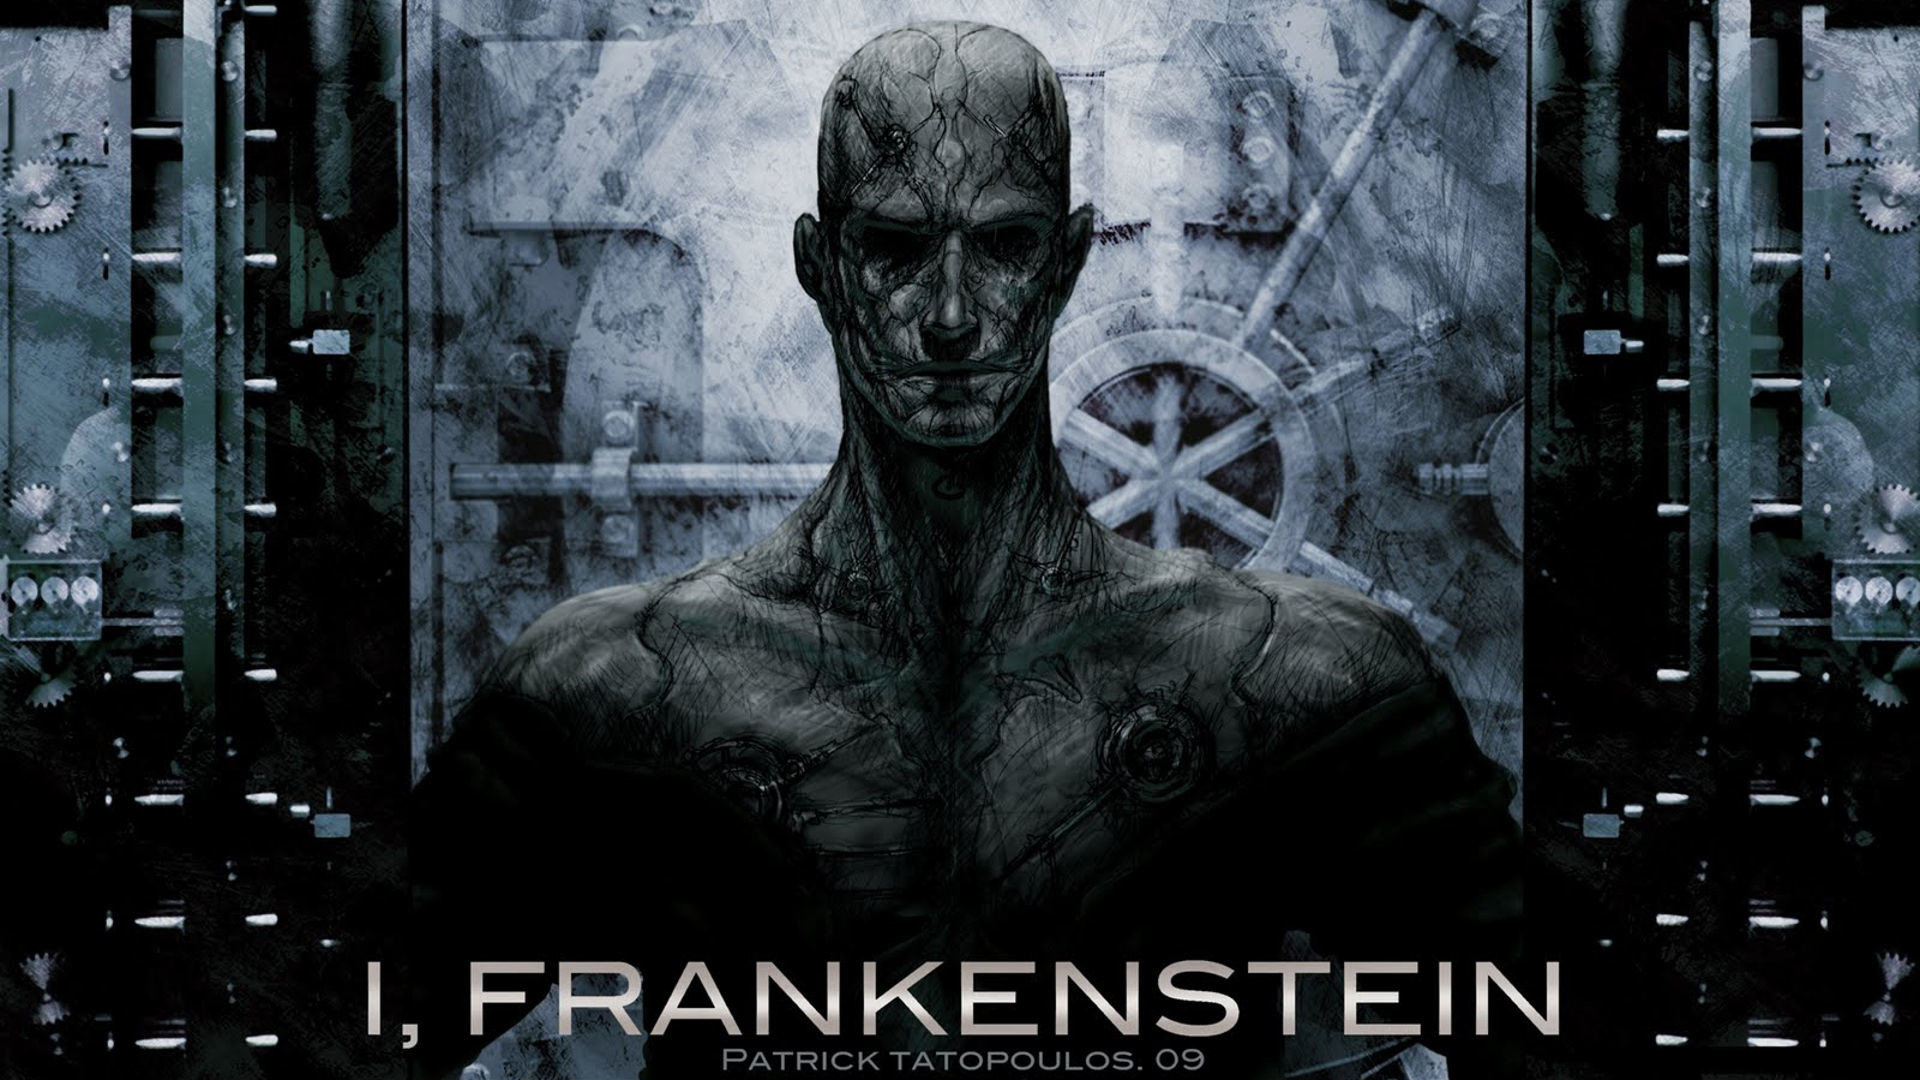 I Frankenstein Movie Wallpaper: HD Horror Movies Wallpapers (50+ Images